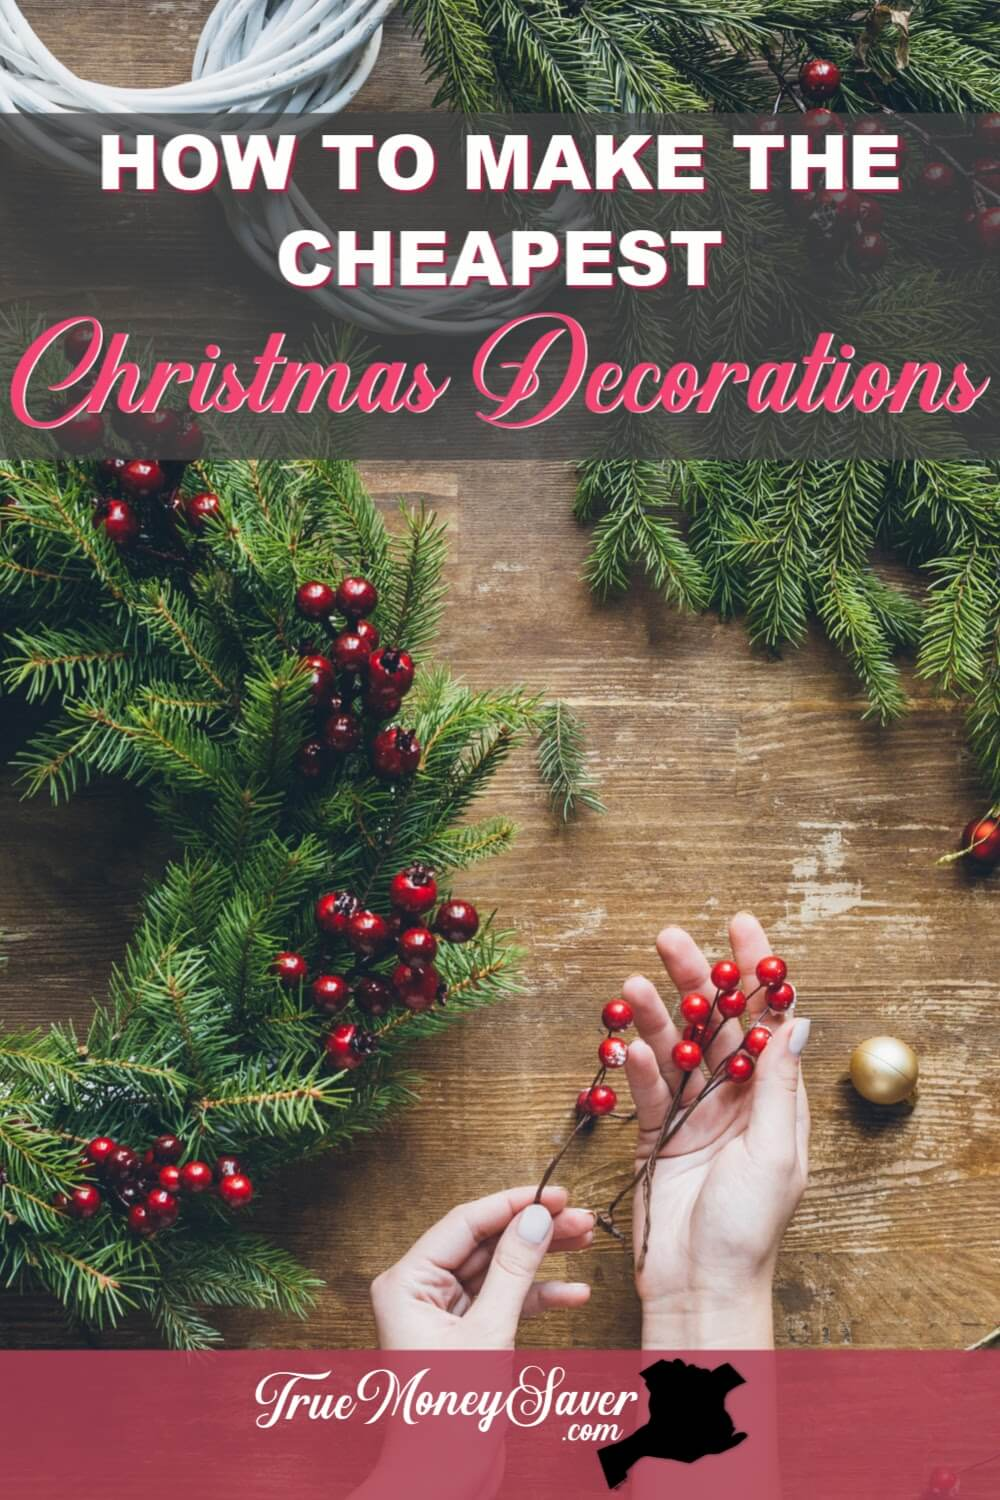 If your home needs some holiday spirit, start with these easy DIY Christmas decoration crafts! I\'ll show you how to make cheap DIY Christmas decorations that are super easy to make. Plus, these Christmas decorations for the home on a budget won\'t break the bank!